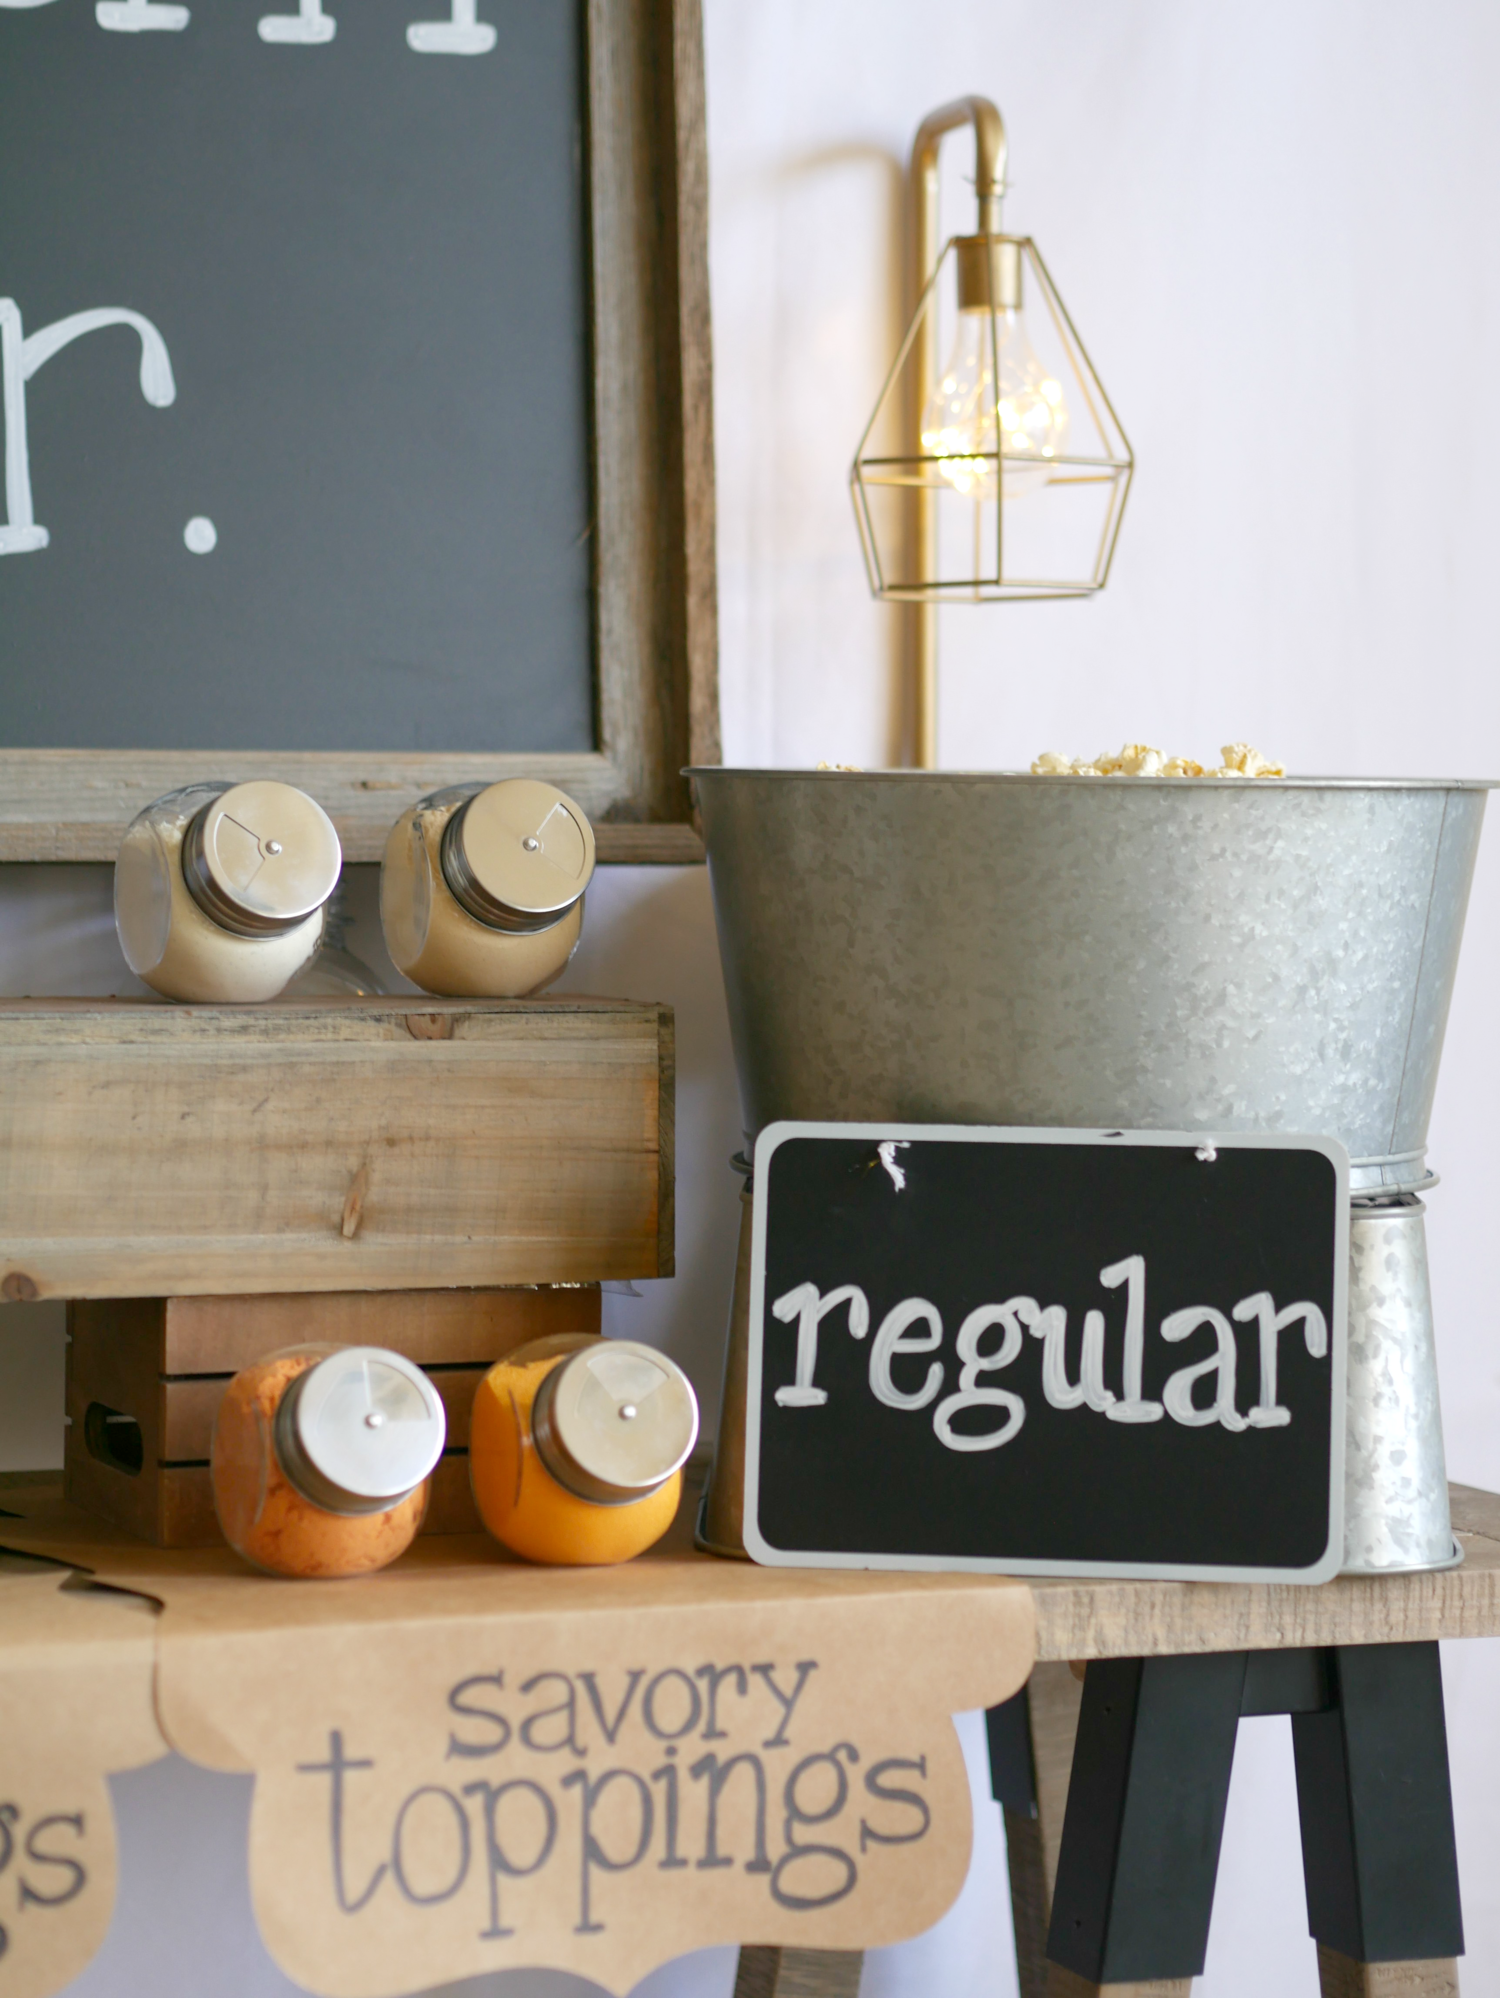 Savory toppings ideas for popcorn / Popcorn bar / Popcorn table / wedding popcorn bar / teen popcorn bar ideas / rustic popcorn bar / Styled by Carolina from MINT Event design / www.minteventdesign.com